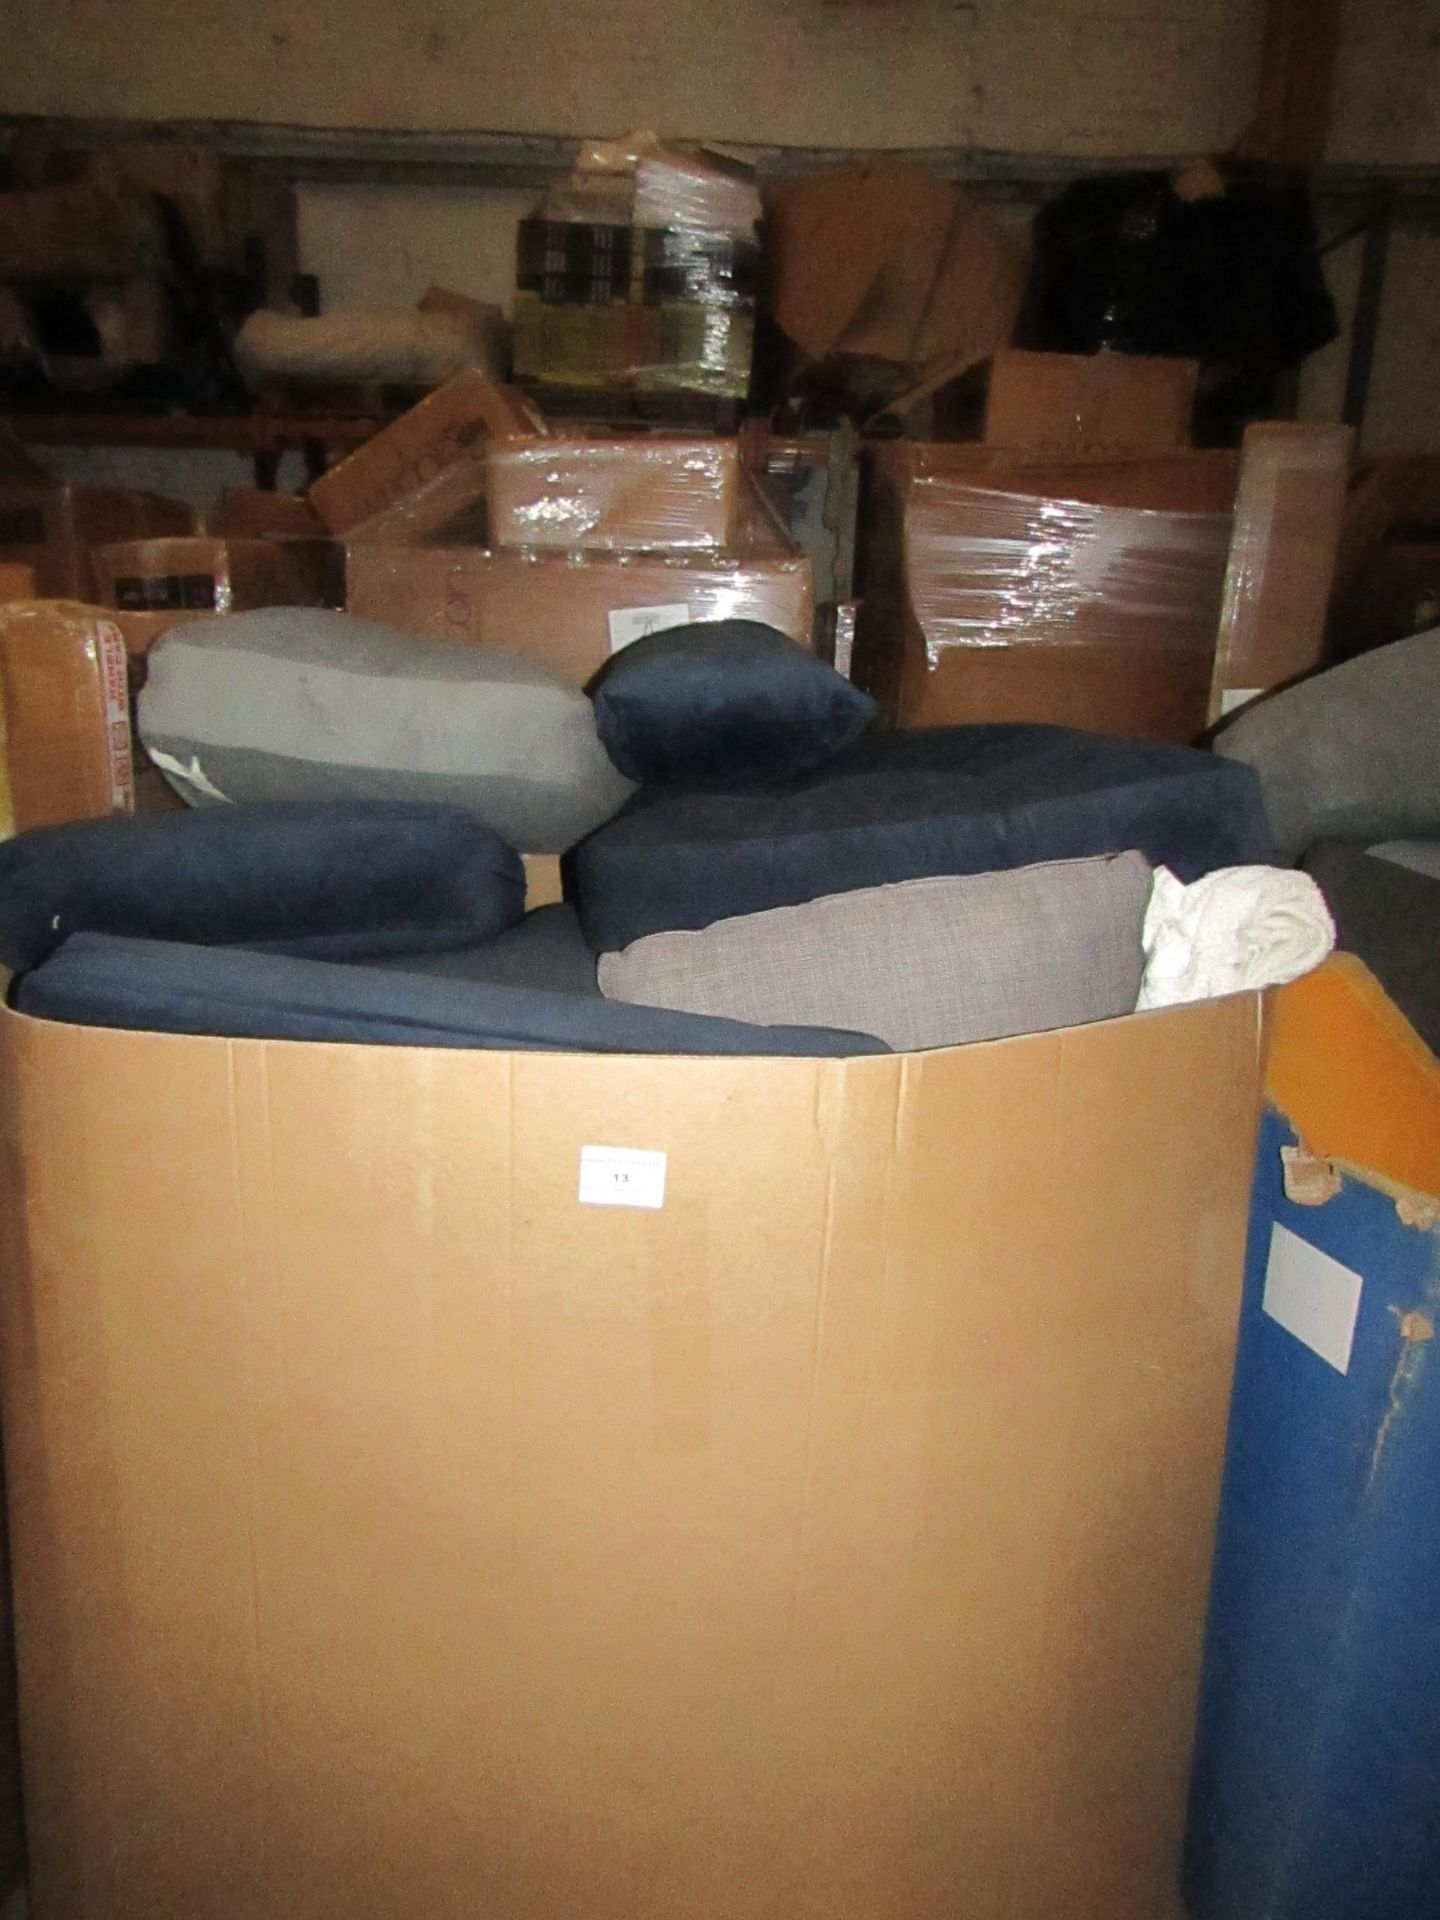 | 1X | PALLET OF SWOON SOFA SEAT CUSHIONS, PLEASE BE AWARE THESE ARE THE ACTUAL CUSHIONS YOU SIT